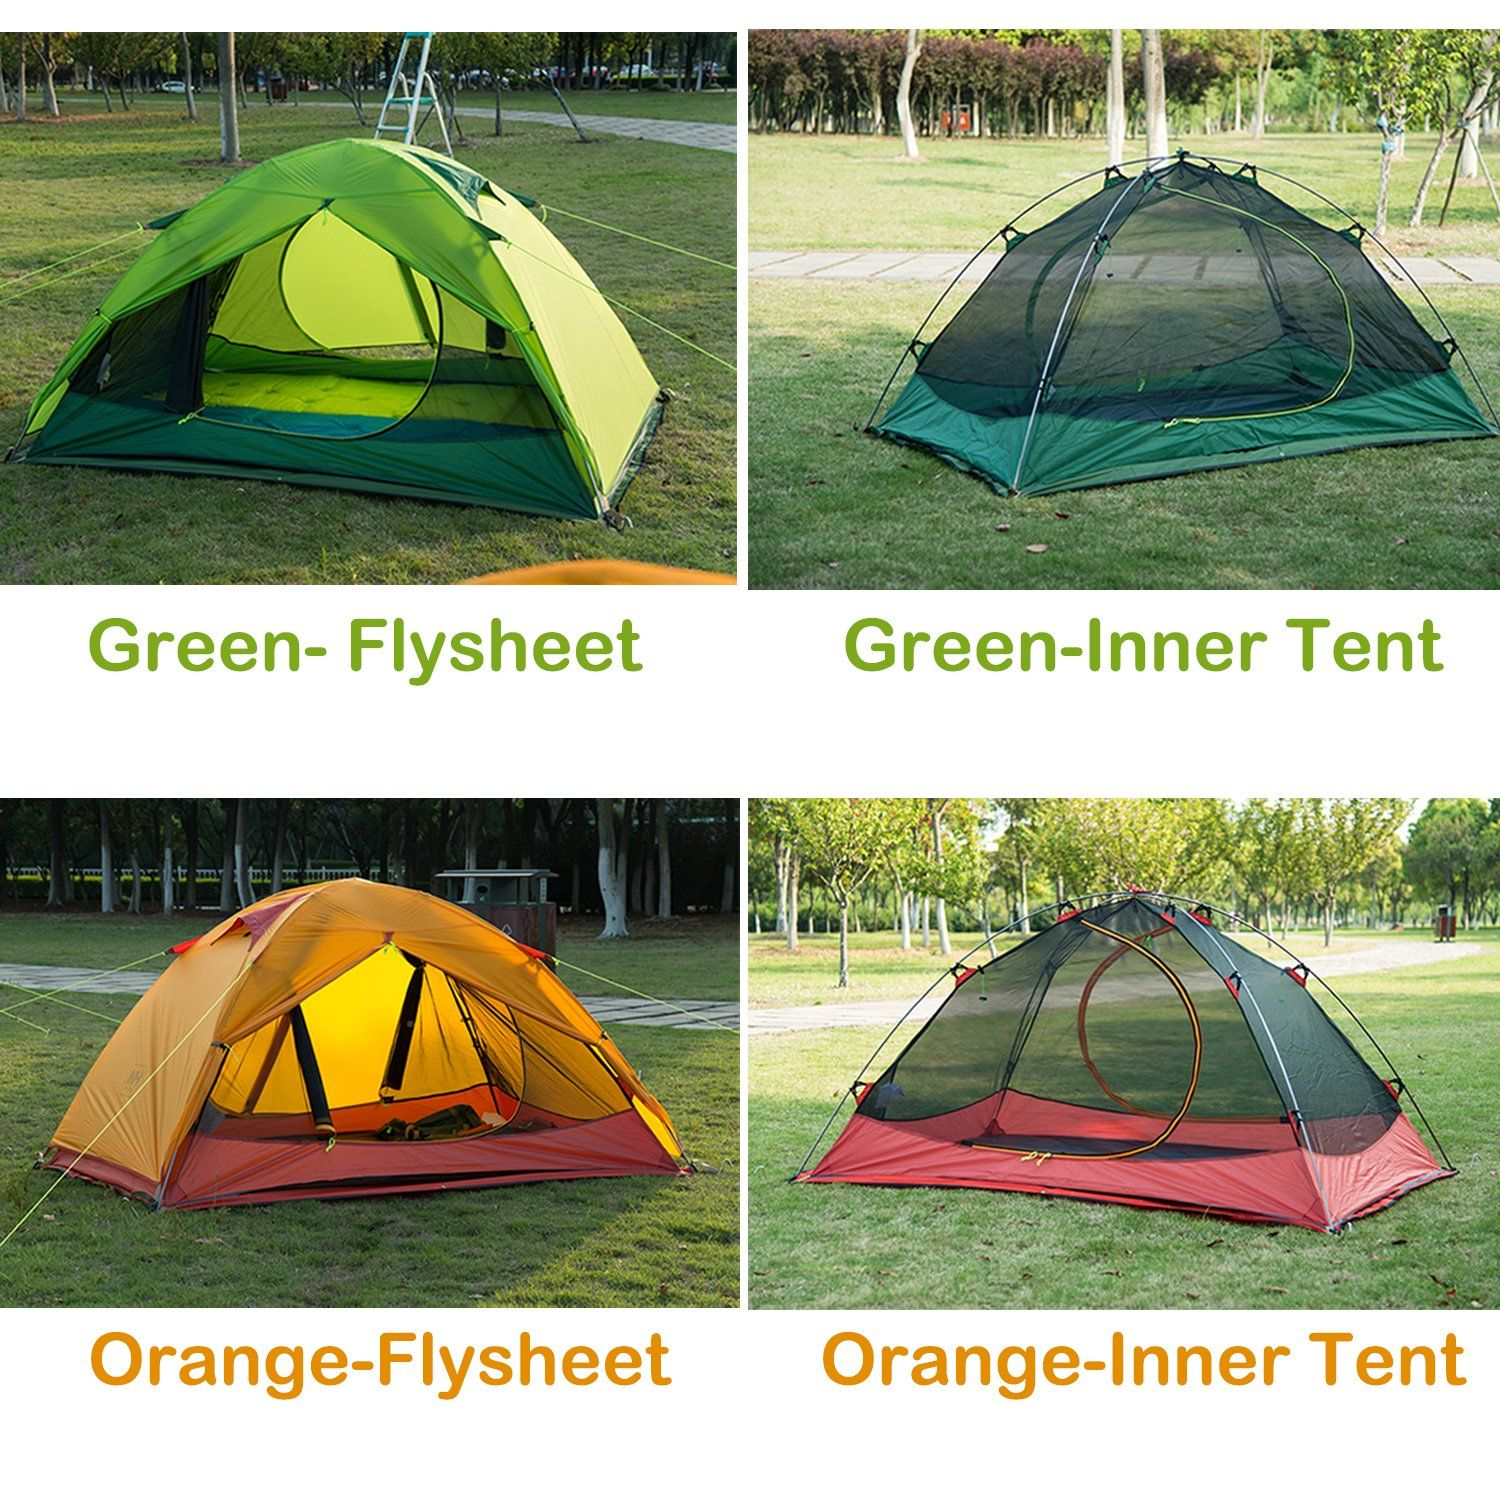 Naturehike Ultralight 2 Person 3 Season Backpacking Tent For Camping Silicone Coated Lightweight Waterproof Two Doors Doub Tent Backpacking Tent Family Outdoor